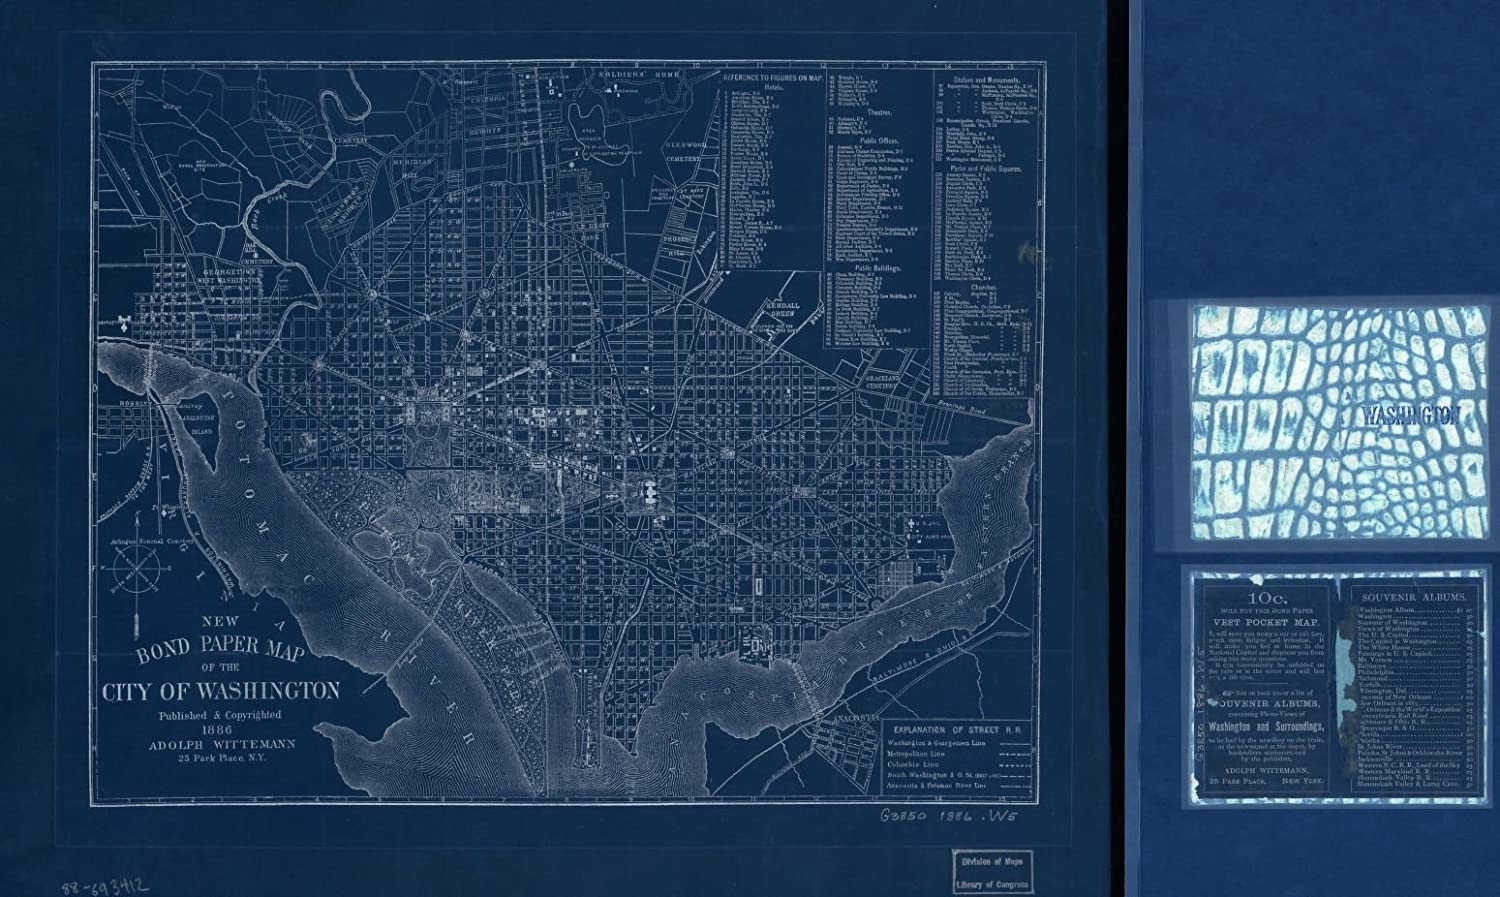 Vintography 18 x 24 Blueprint Las Vegas Mall Large-scale sale Style 1886New Reproduced B Map Old